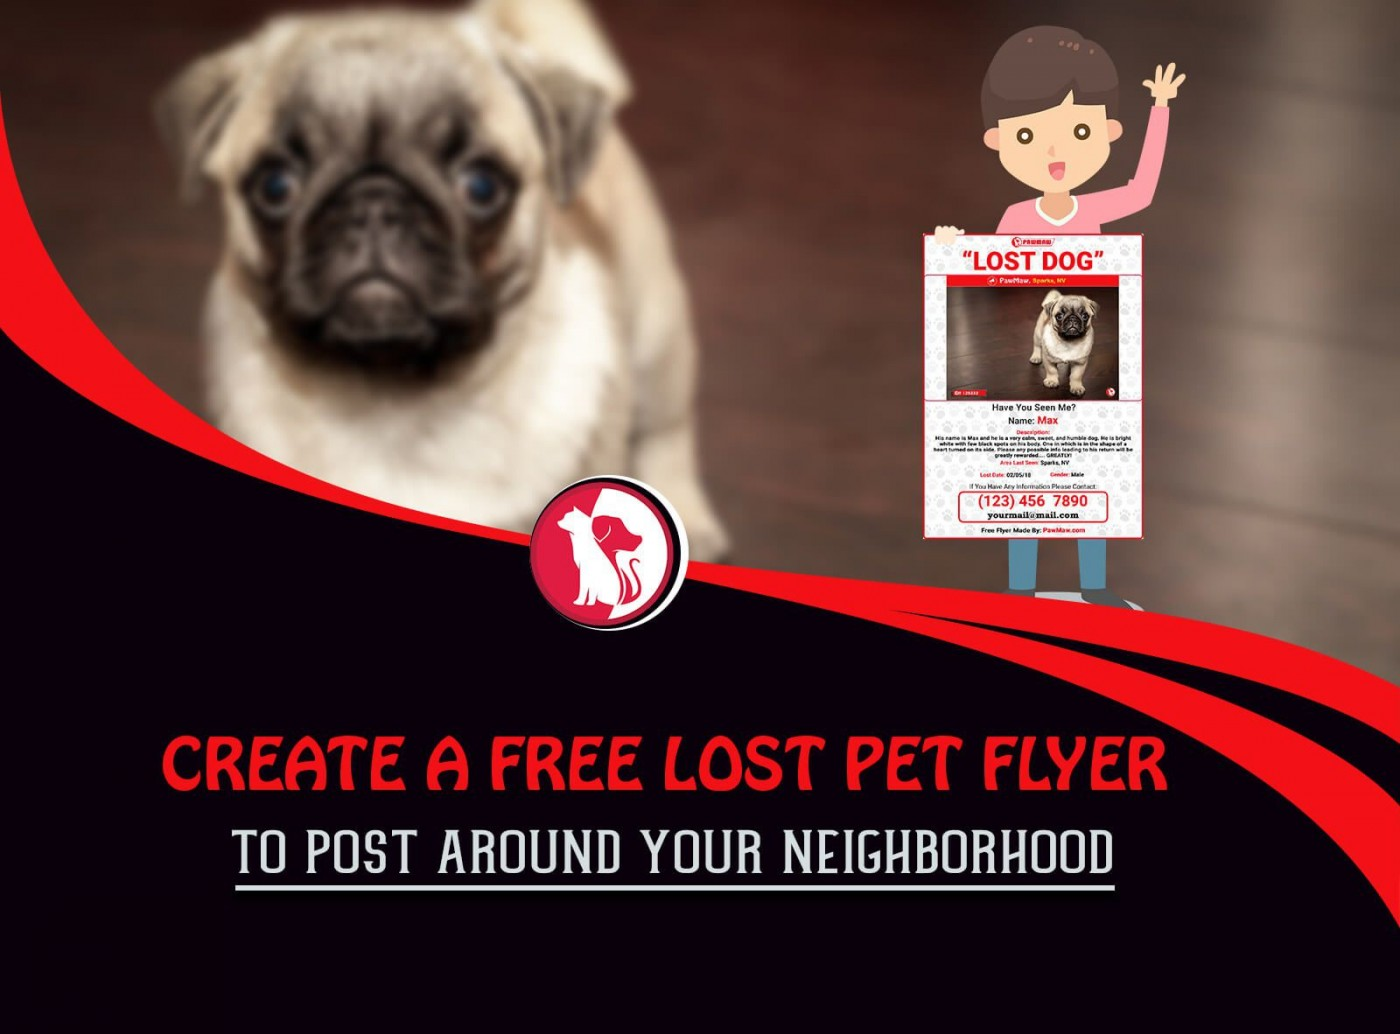 000 Imposing Missing Dog Flyer Template Idea  Lost Poster1400